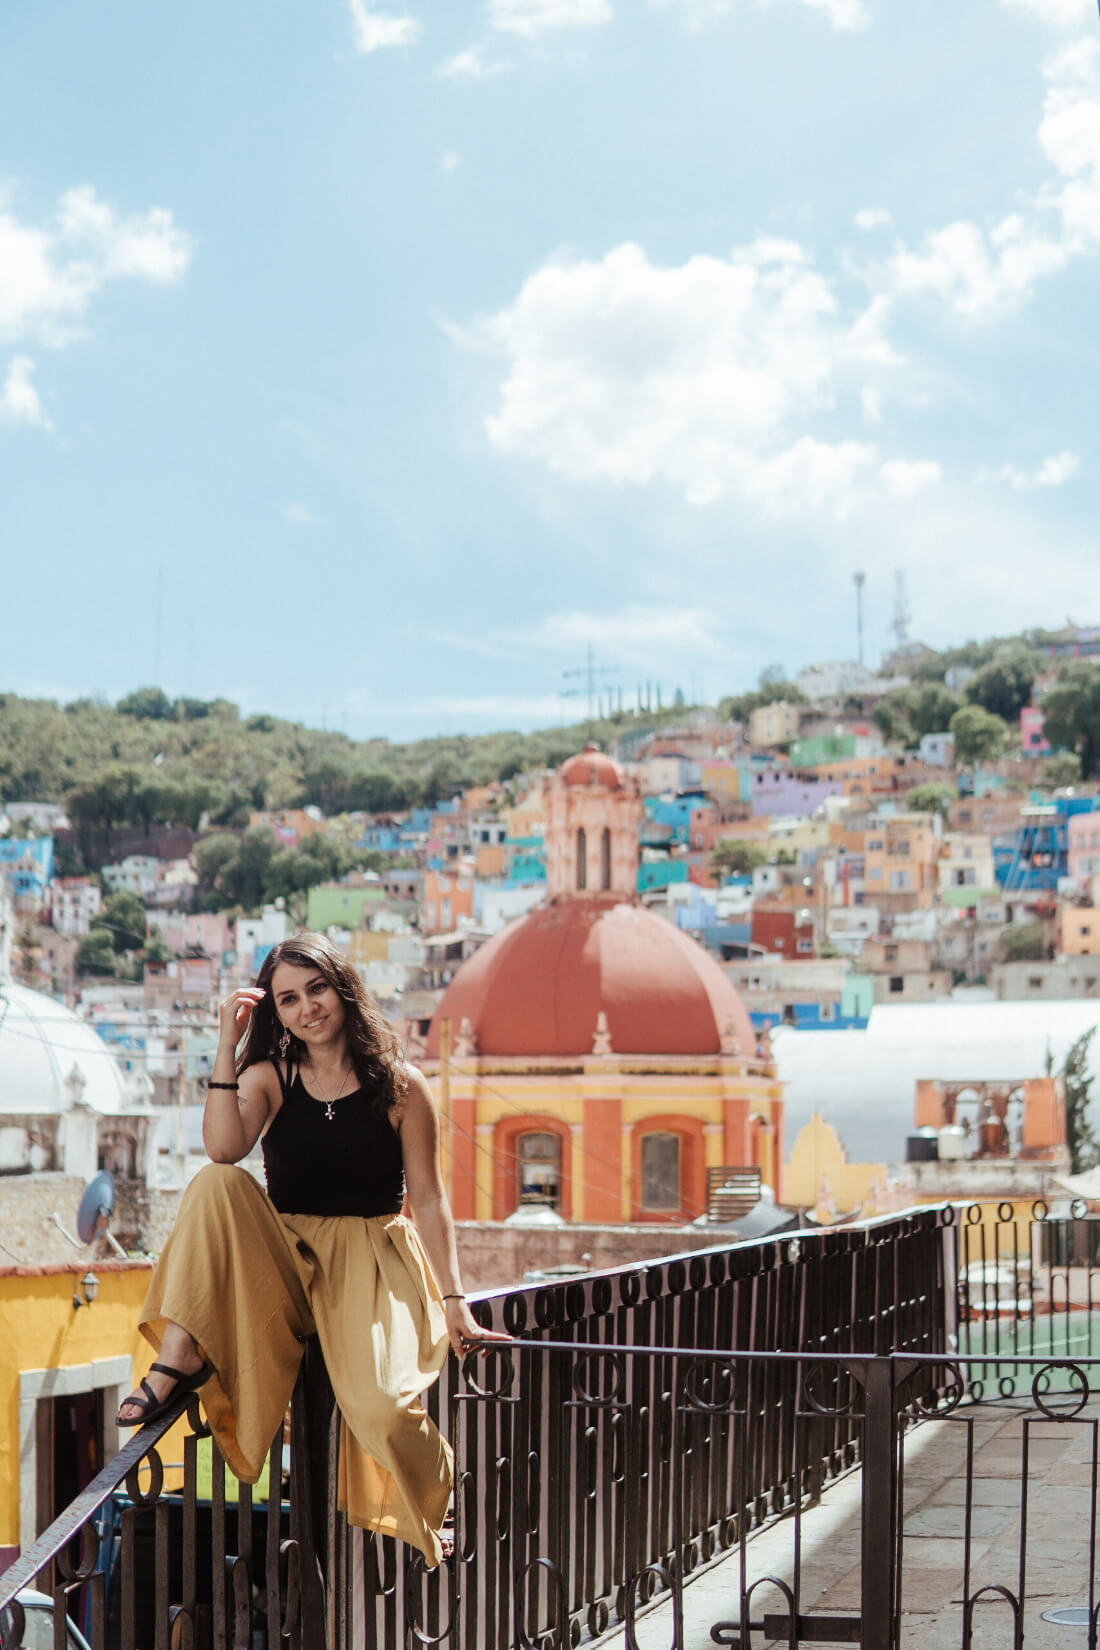 Stacey Valle sitting on a metal railing with a backdrop of colorful houses on the hillside behind her